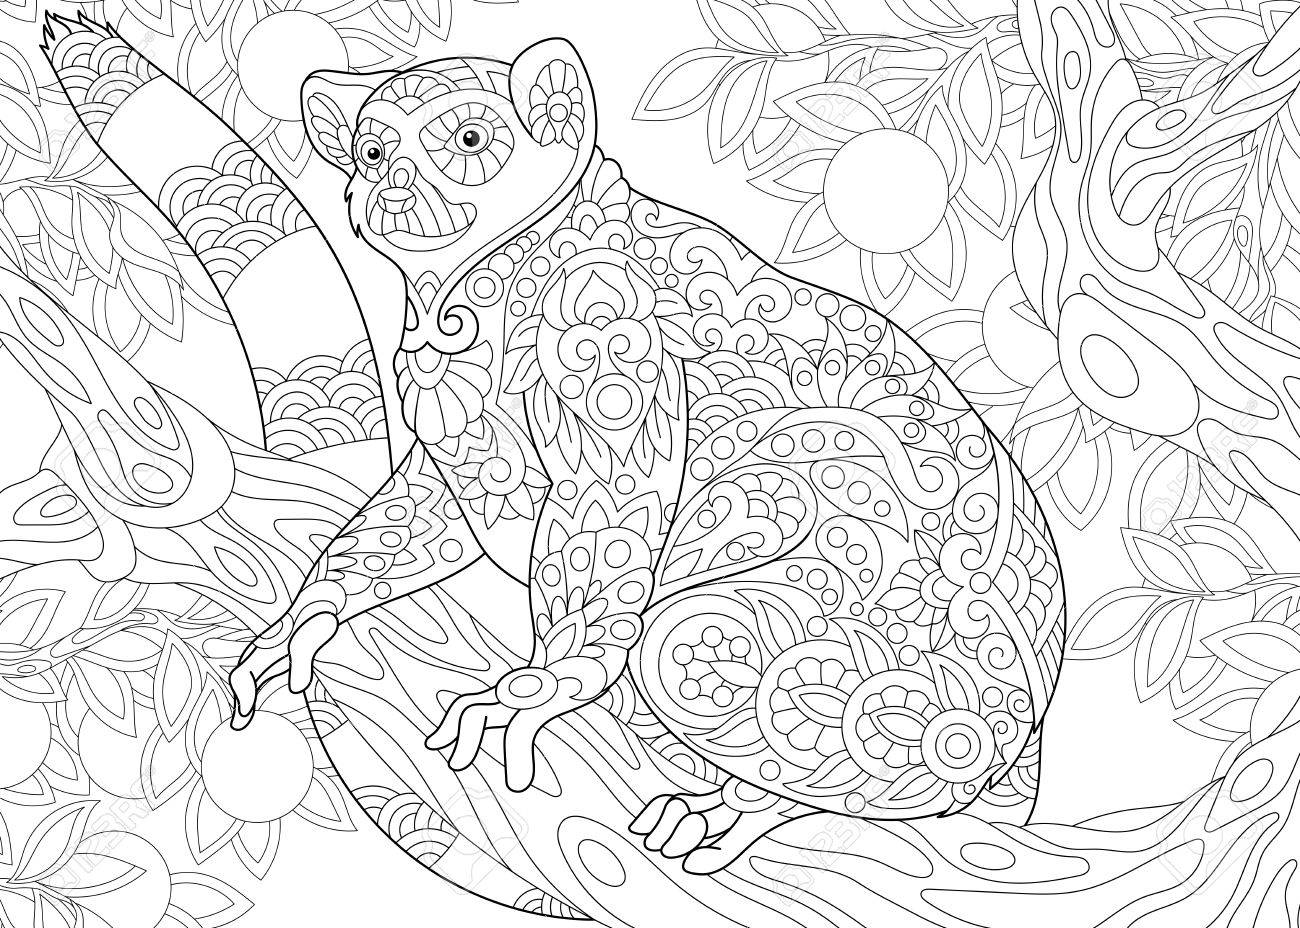 Stylized Wild Lemur Madagascar Mammal Animal Freehand Sketch Royalty Free Cliparts Vectors And Stock Illustration Image 77600603